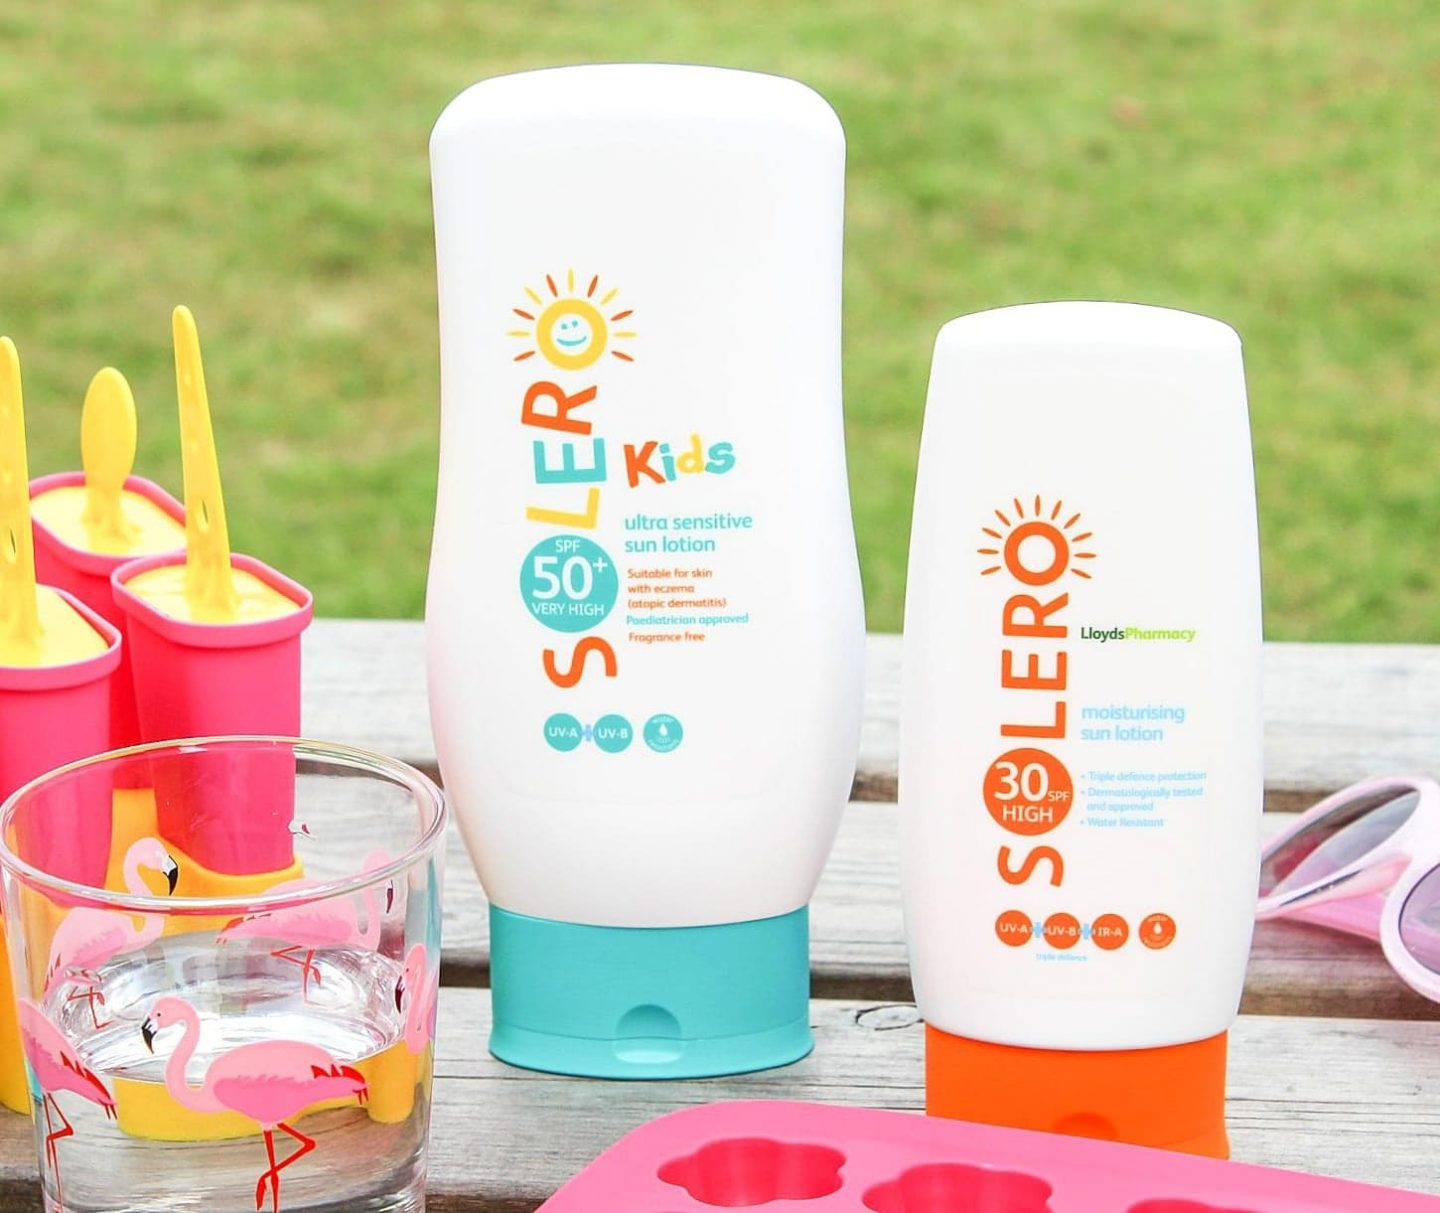 Protect Your Family this Summer with LloydsPharmacy Solero Sun Lotion